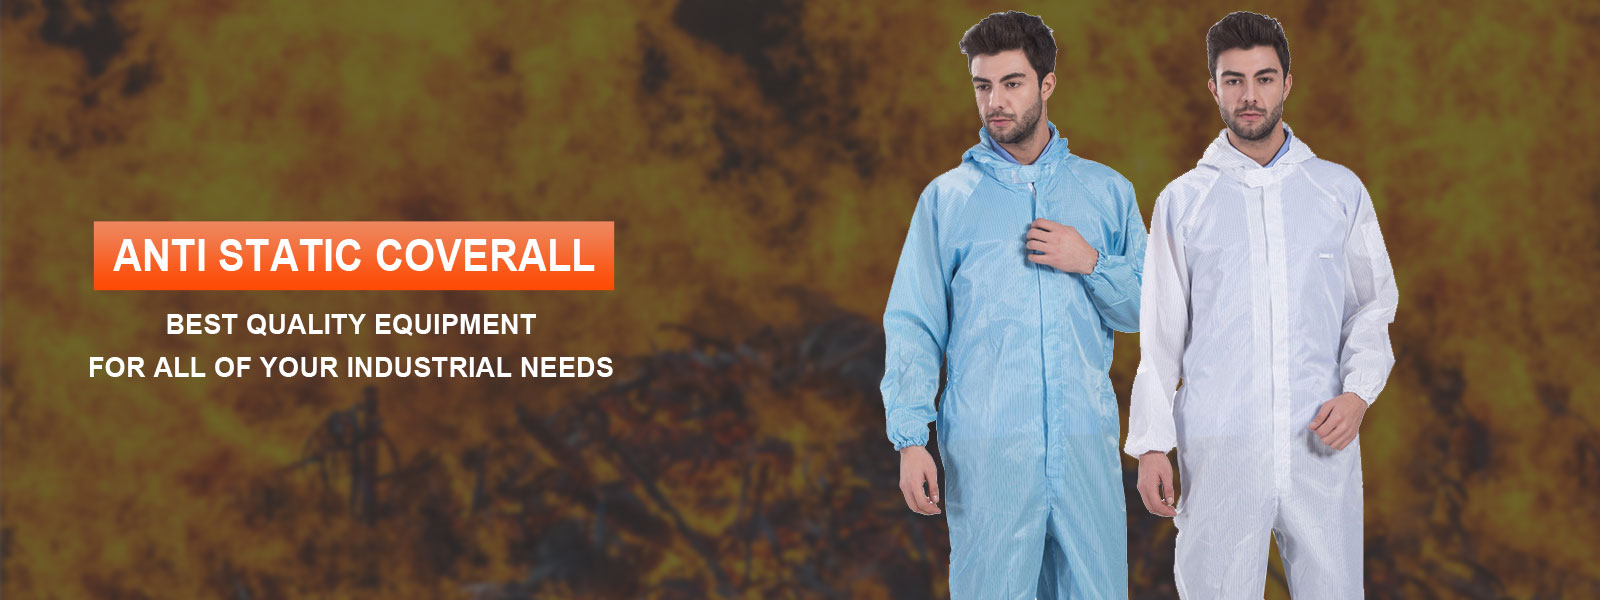 Anti Static Coverall Manufacturers in Ludhiana